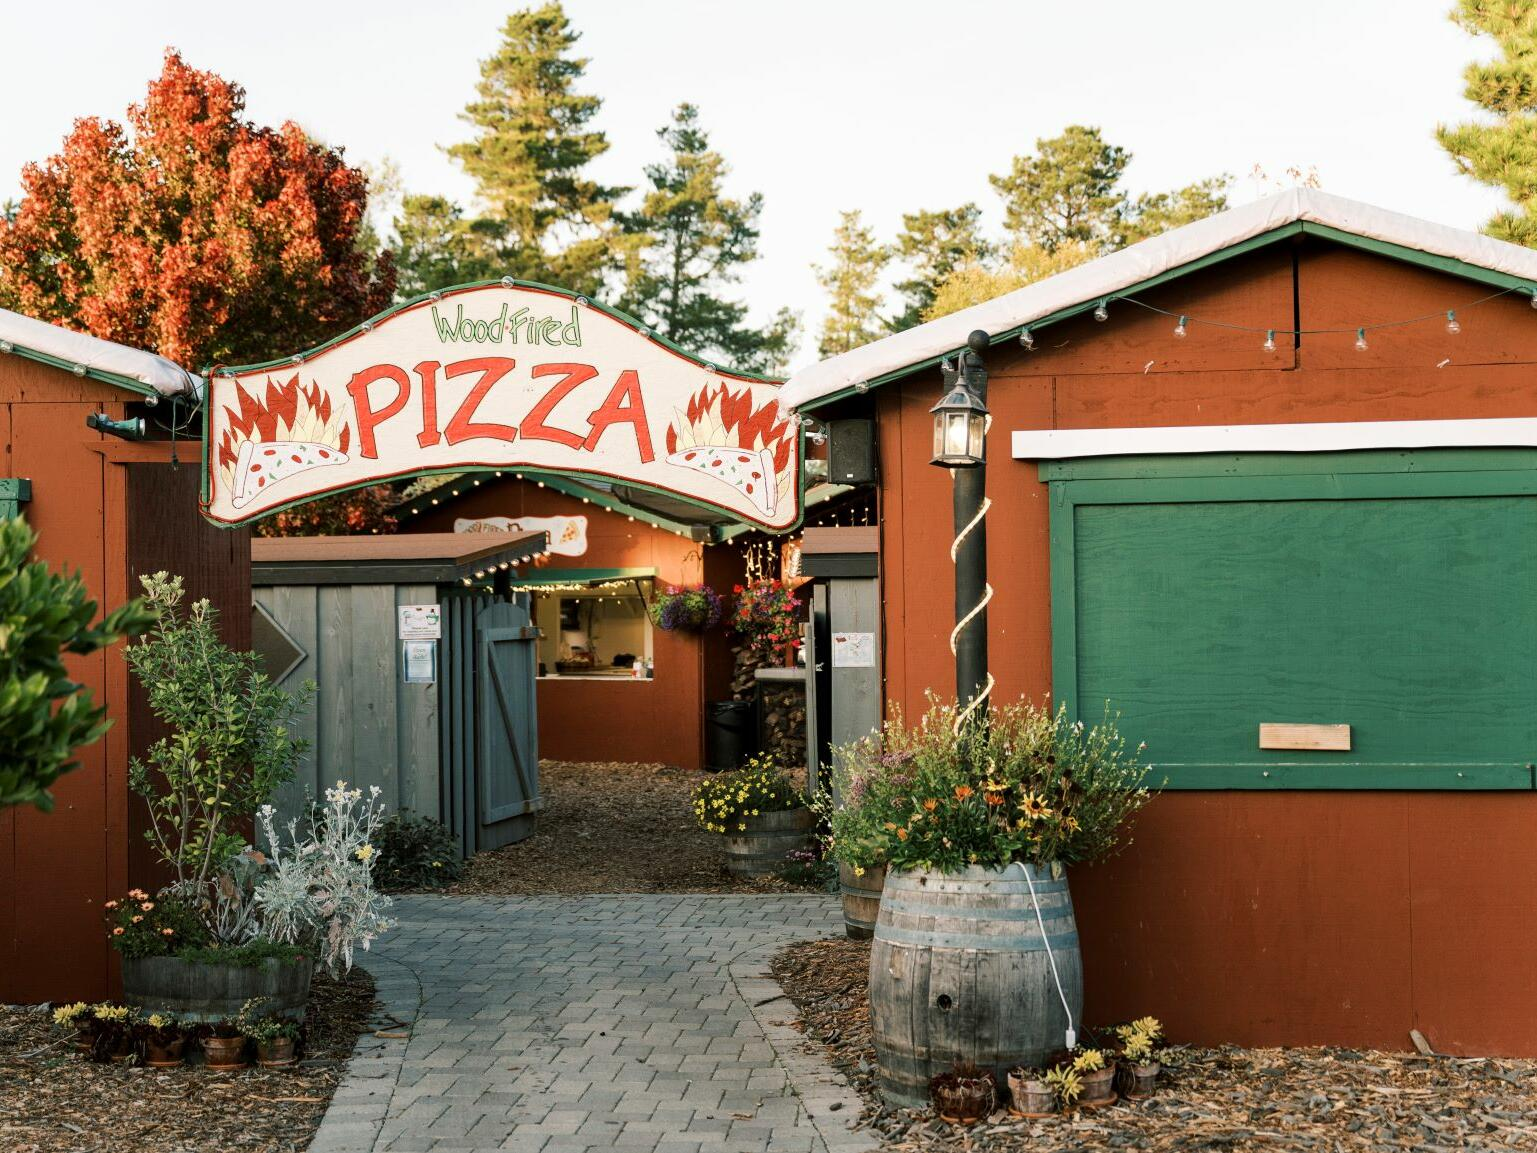 Exterior of the Pizza Nook